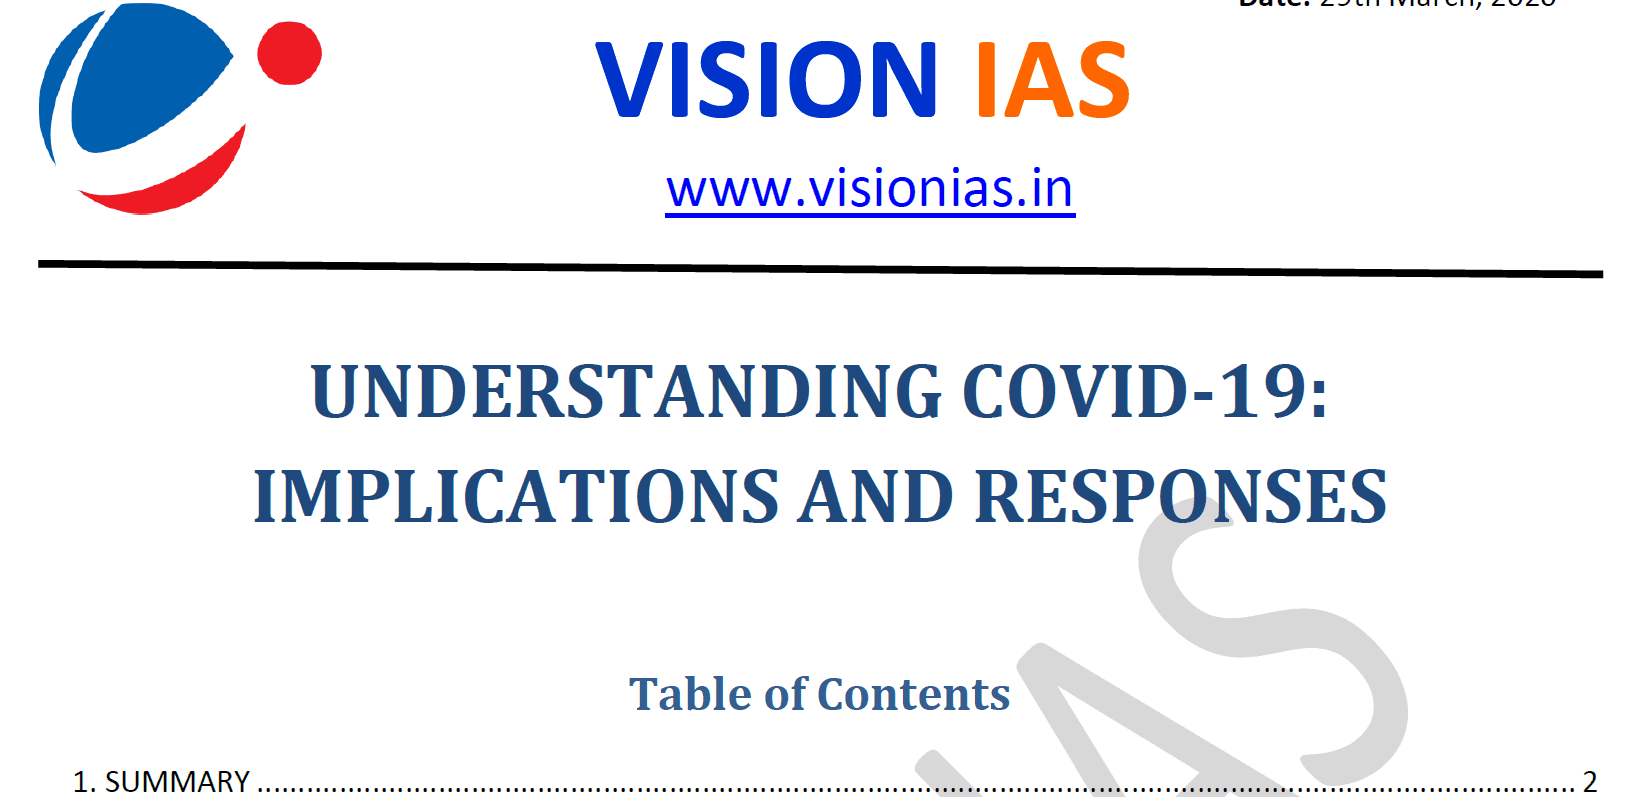 COVID-19 Implication and Response